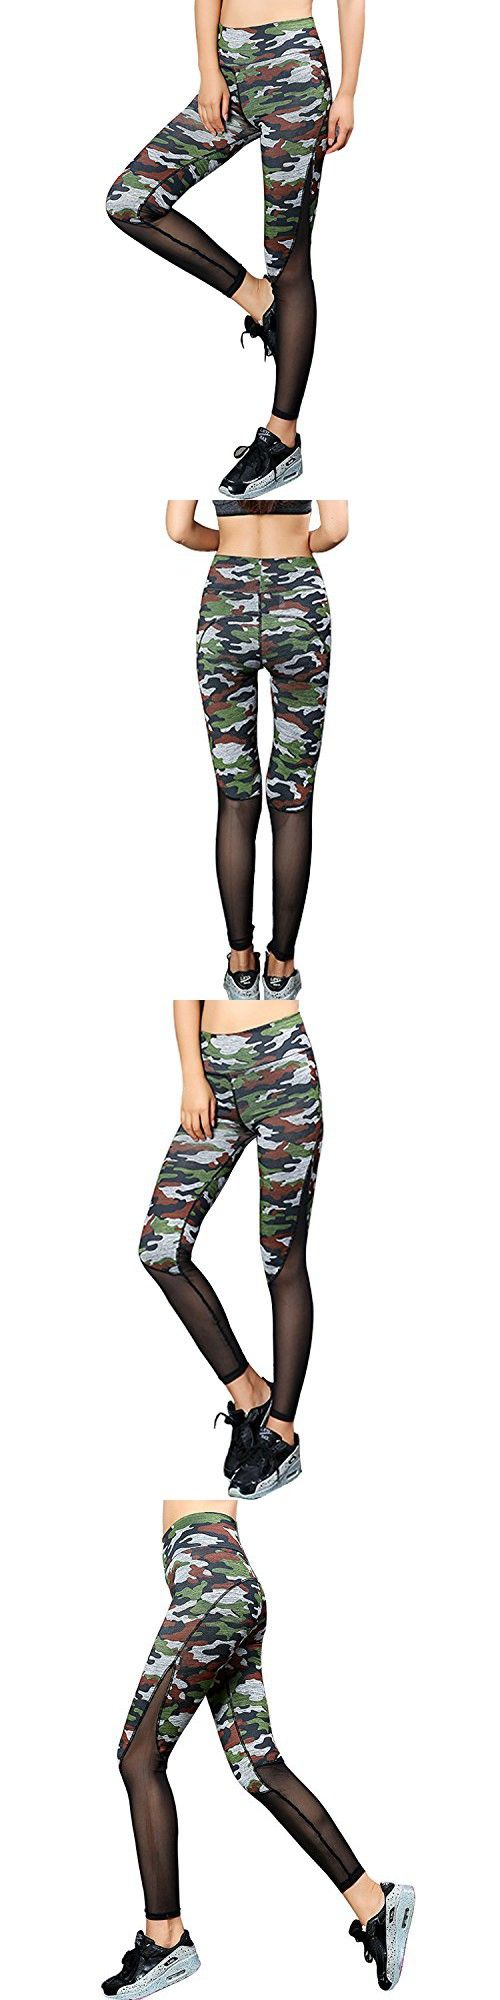 Tulucky Women's Mesh Patchwork Stretchy Workout Leggings Fitness Yoga Pants (S, camo)